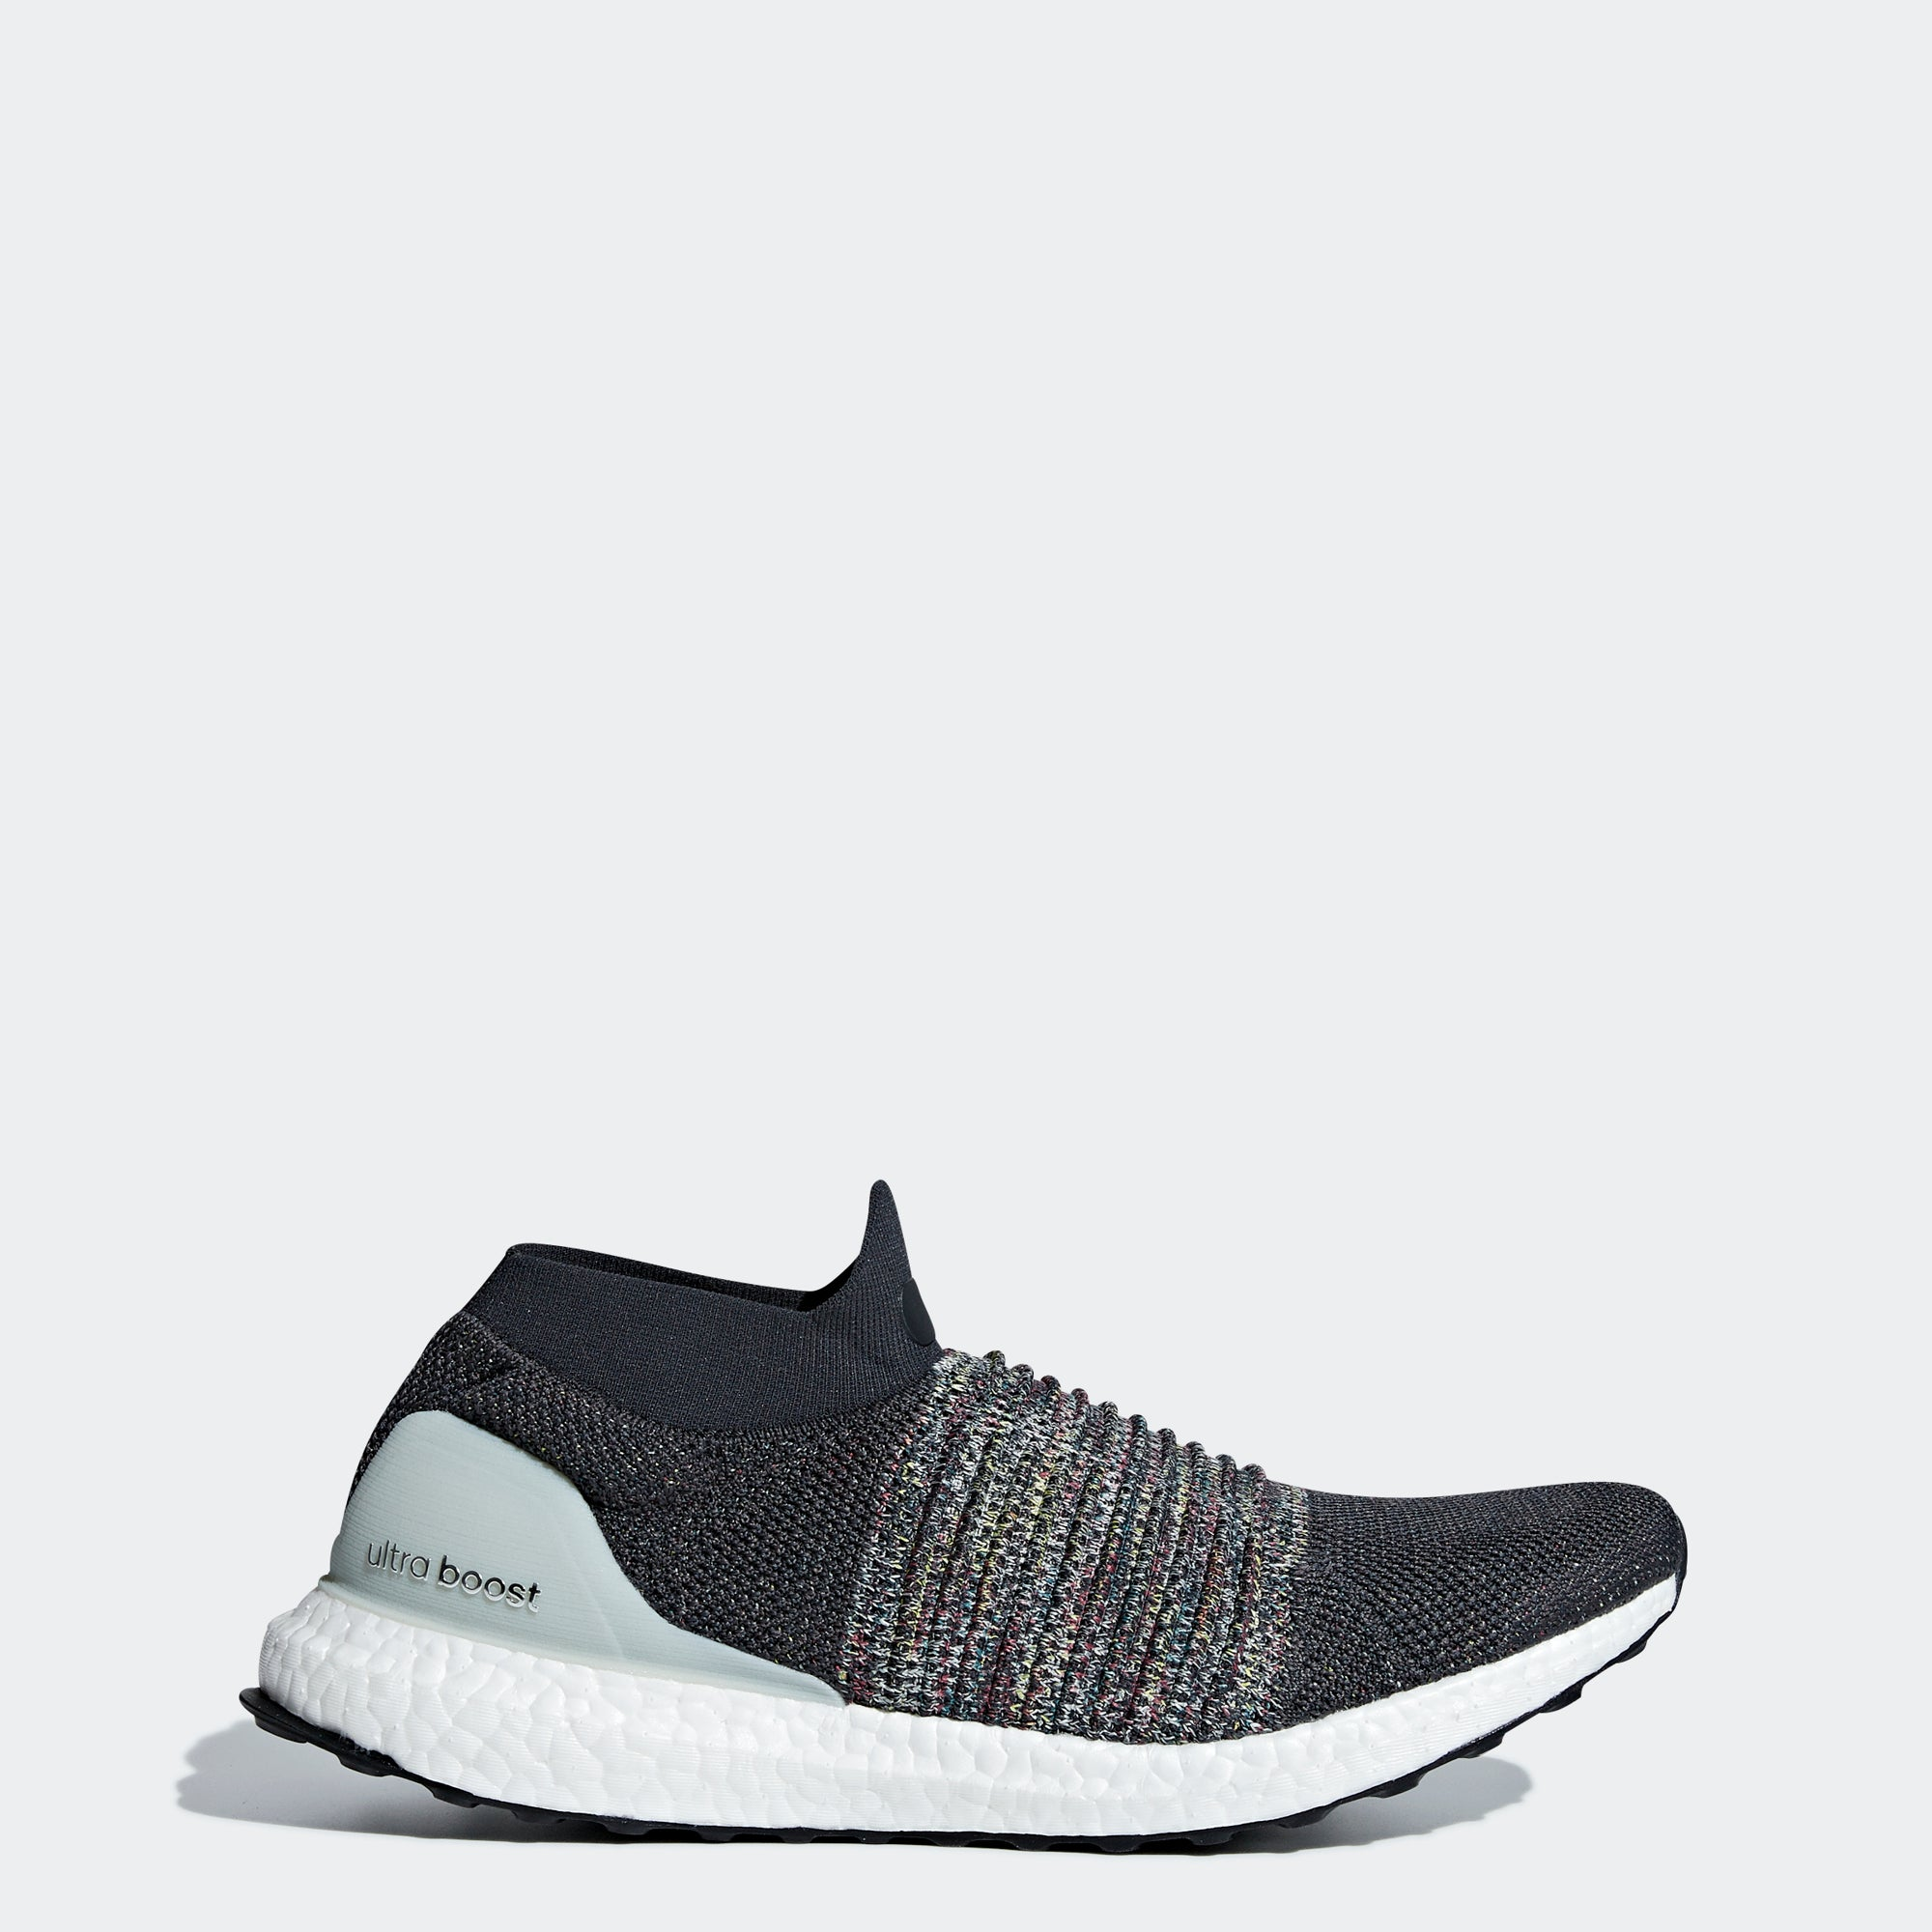 adidas Ultraboost Laceless Shoes Carbon